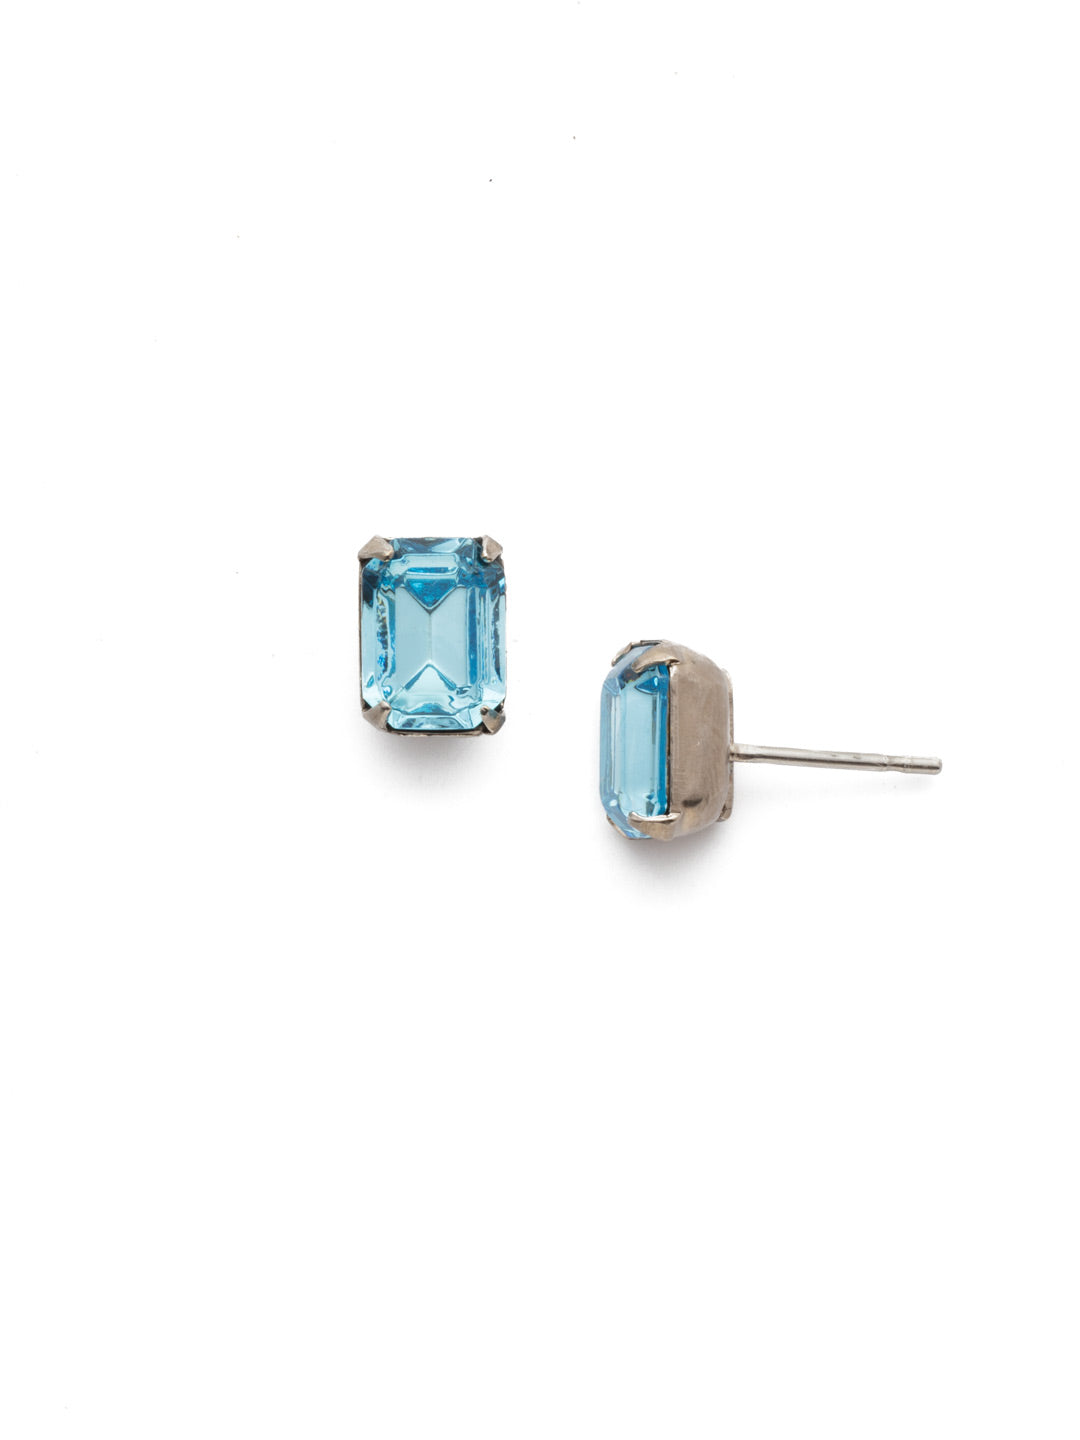 Mini Emerald Cut Stud Earrings - EBY42ASAQU